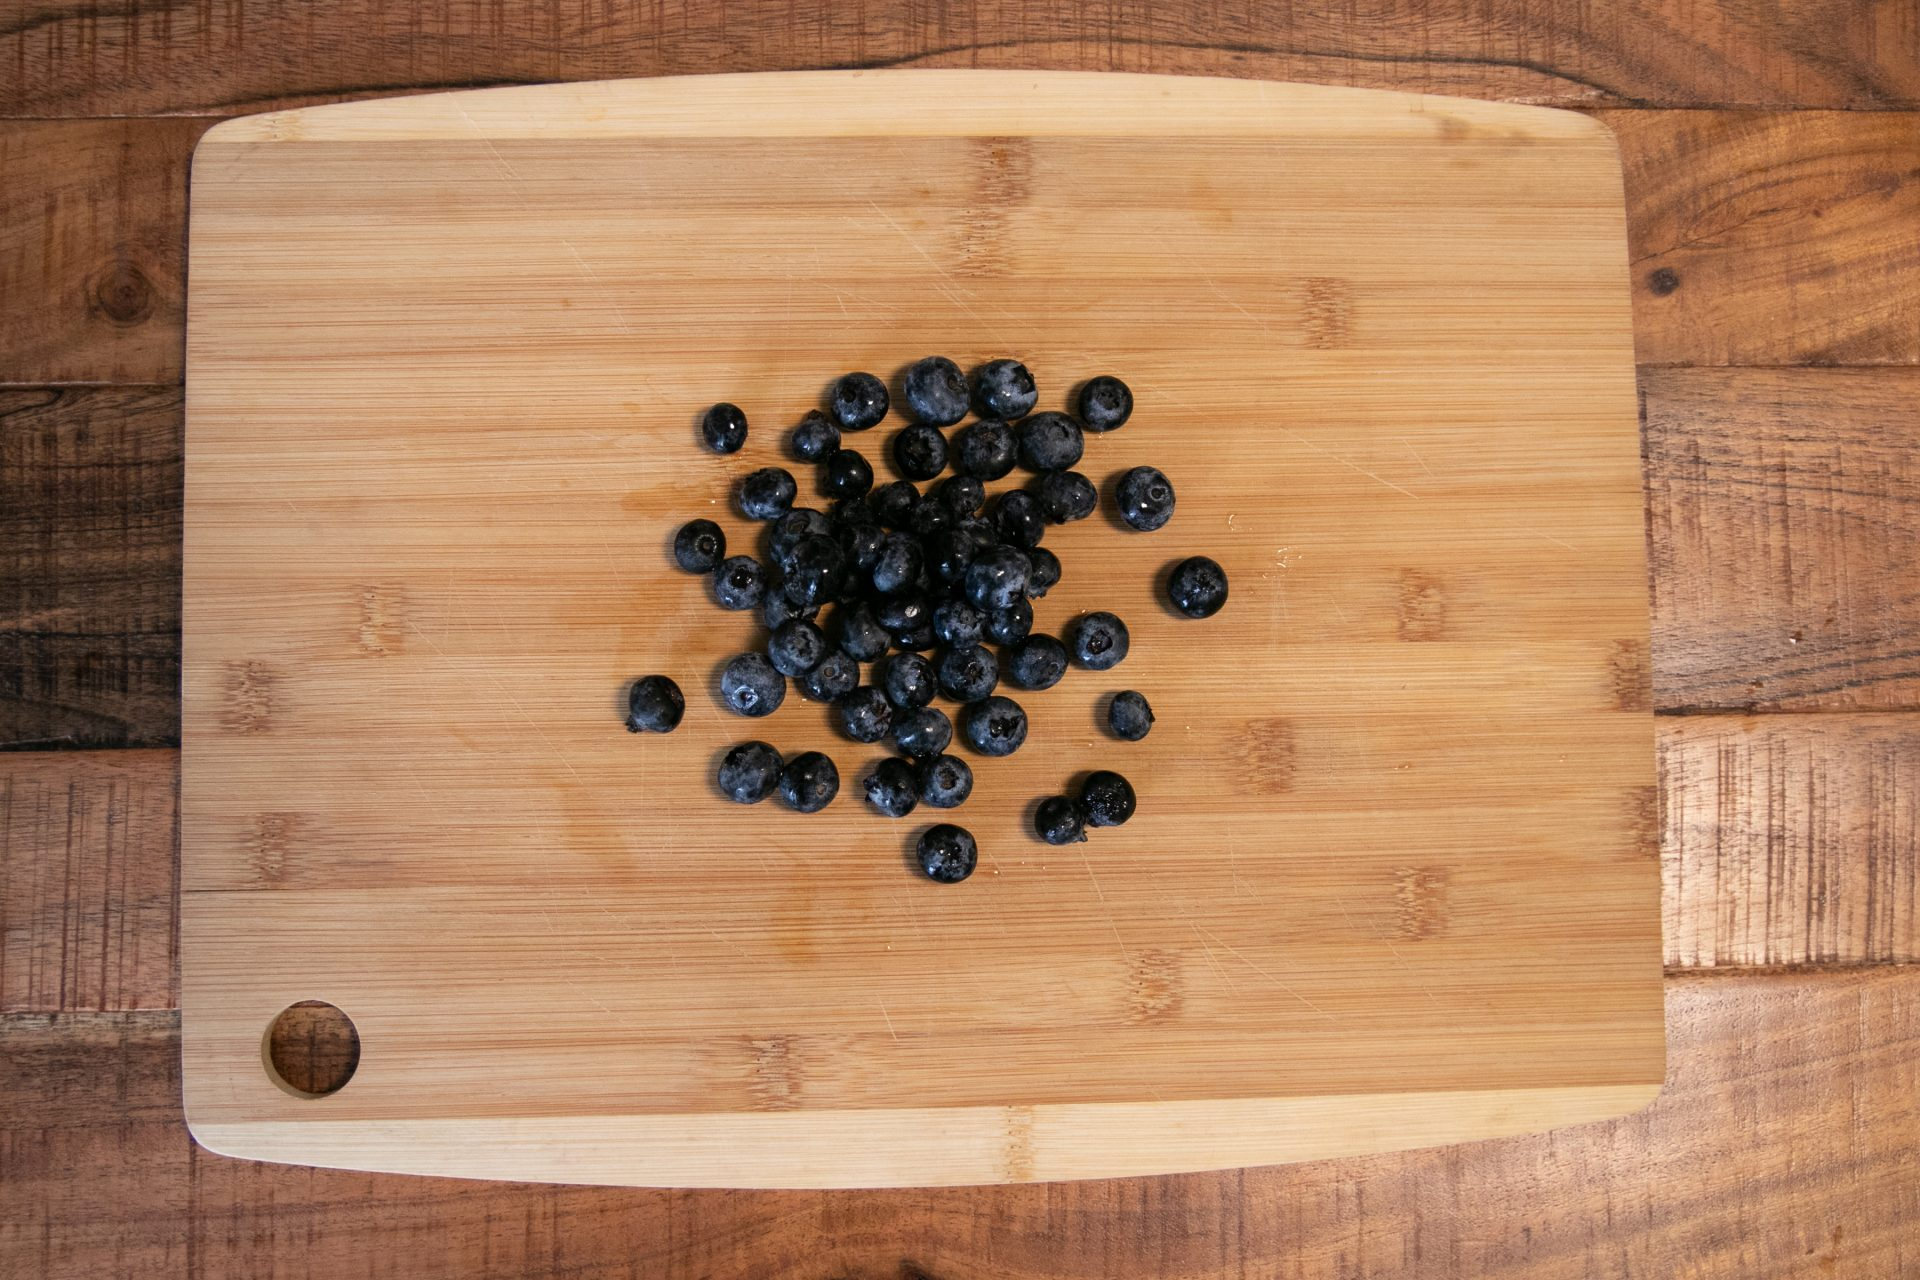 Blueberries On Wooden Cutting Board